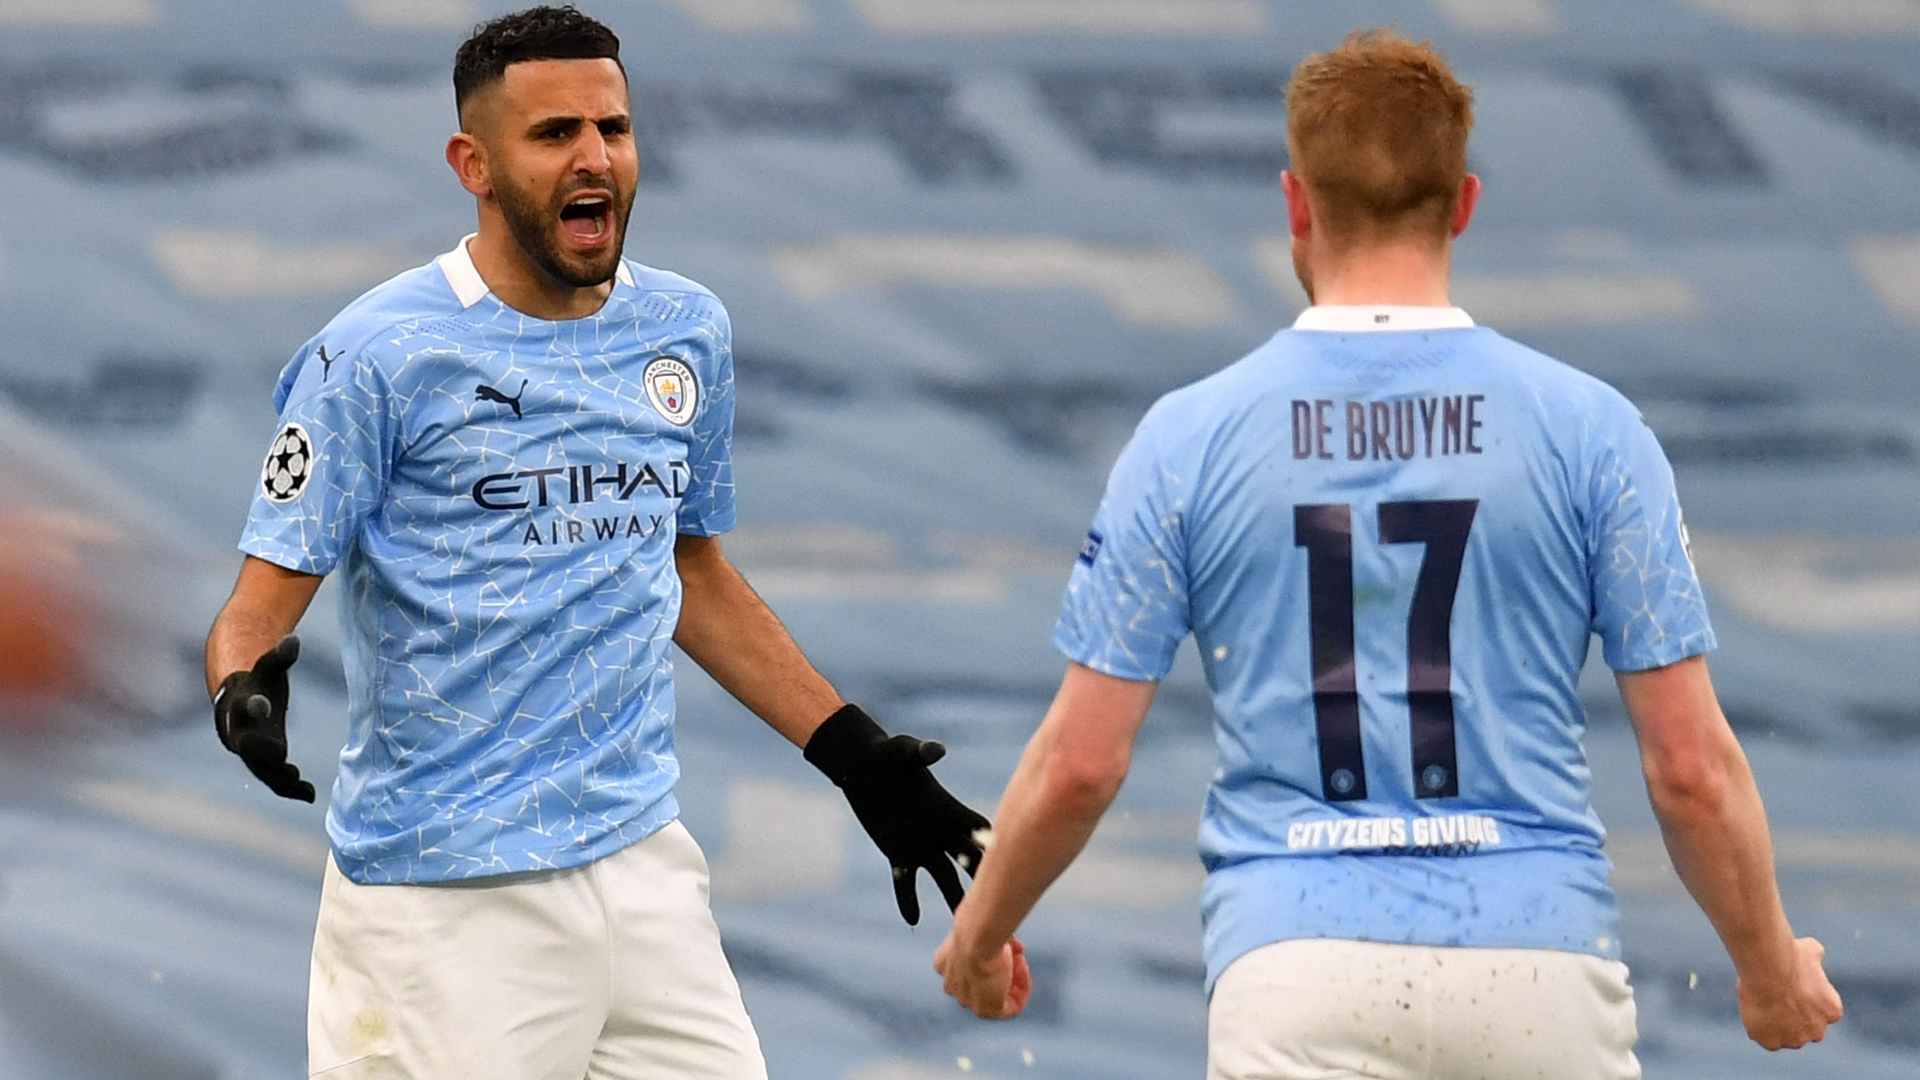 Man City winner Mahrez claims PSG 'lost their temper and started kicking us'